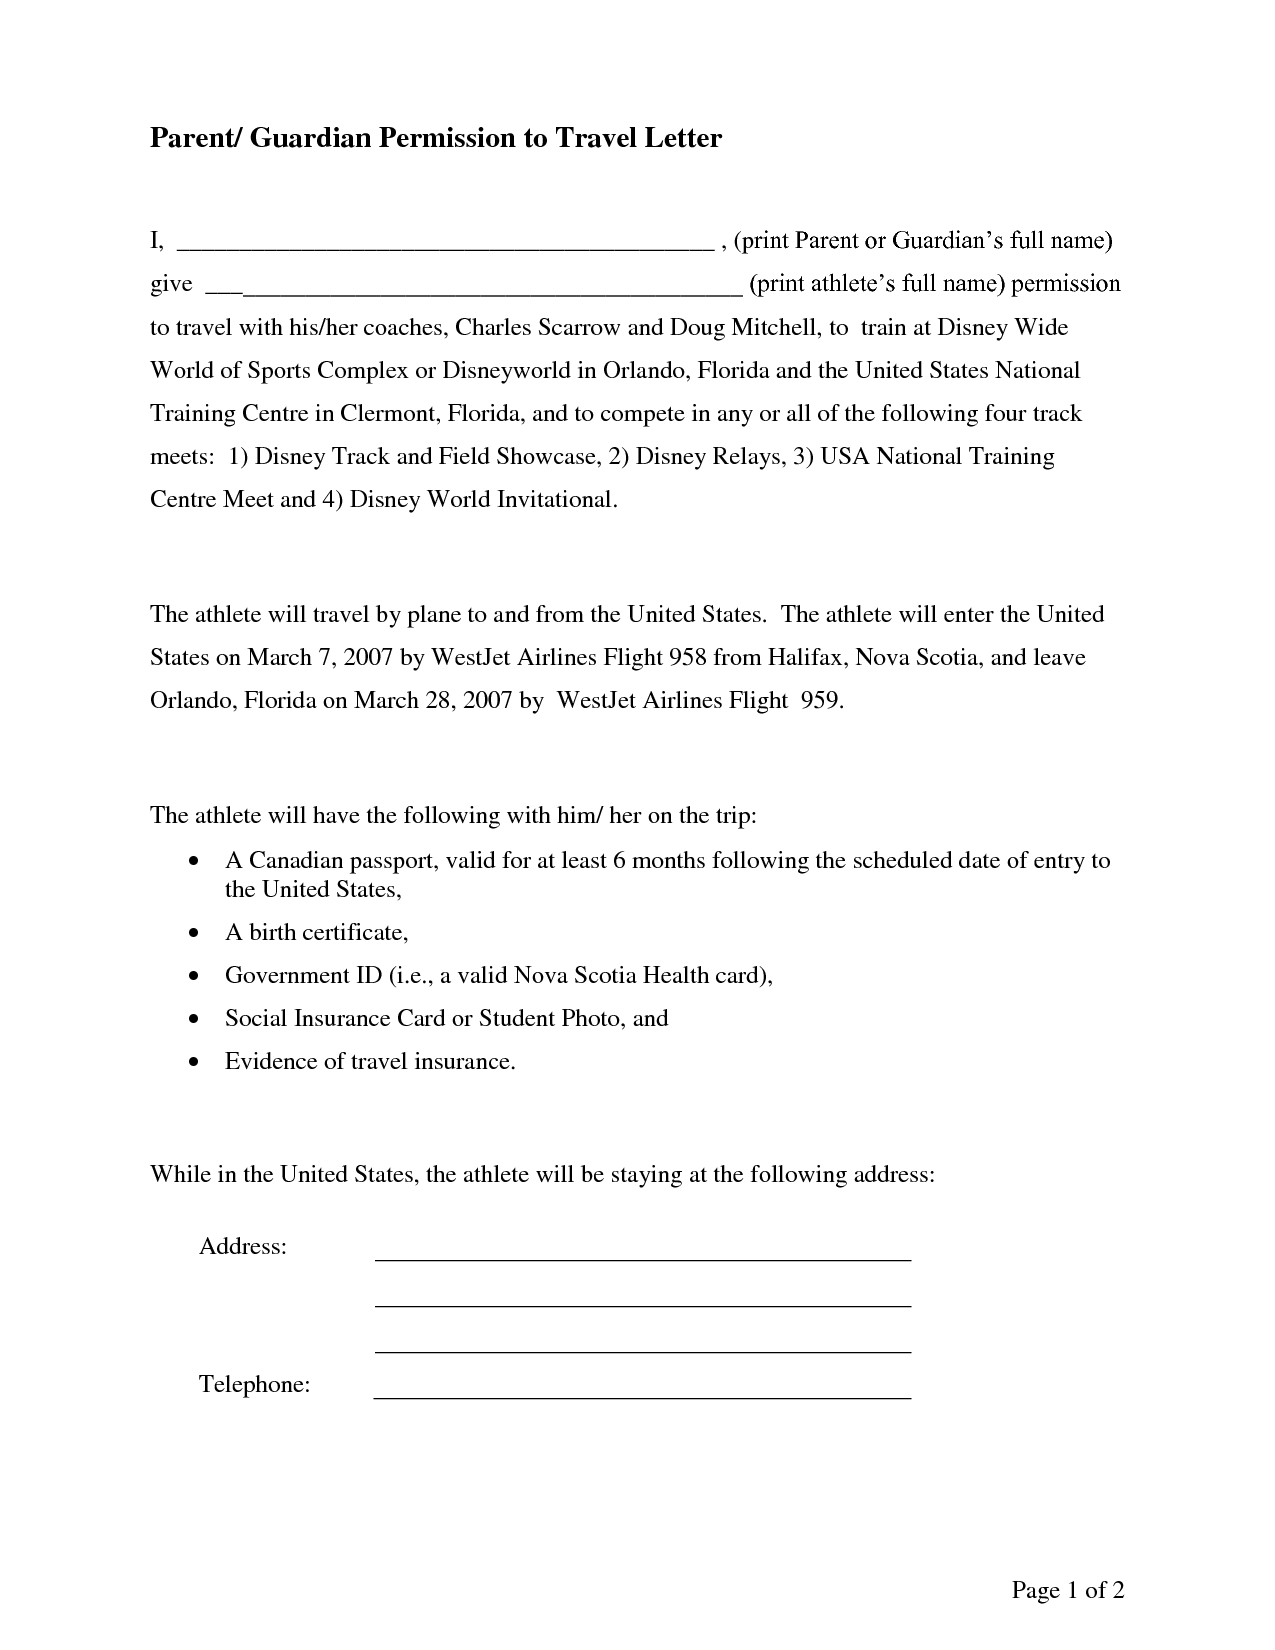 Parental Consent Permission Letter Sample – Sample Permission Letter for Traveling Child